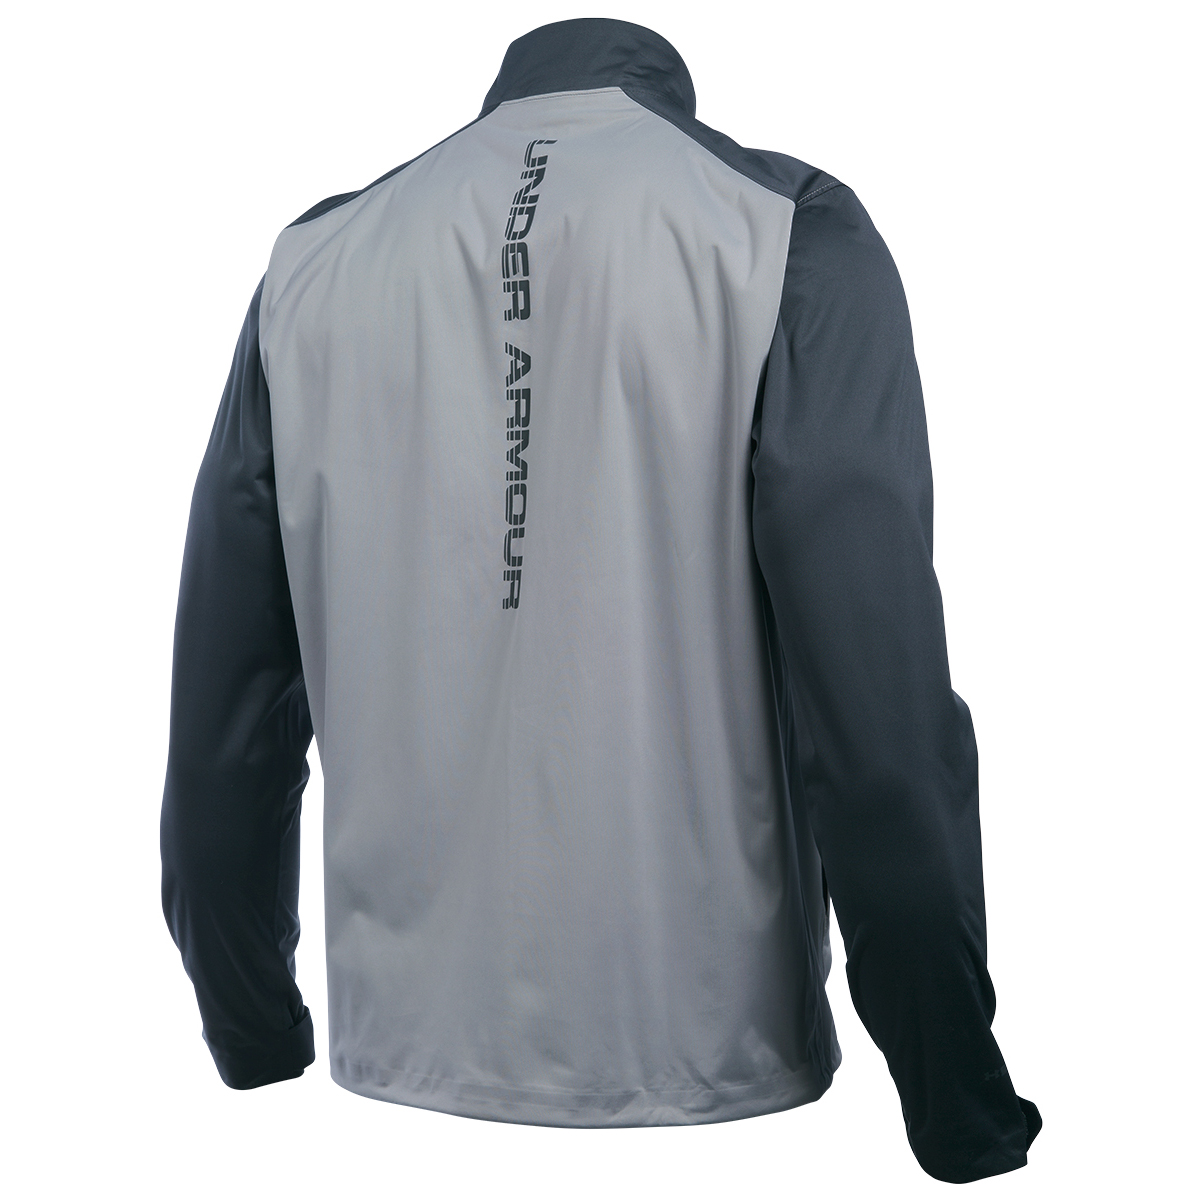 Under Armour Storm 3 Waterproof Jacket From American Golf